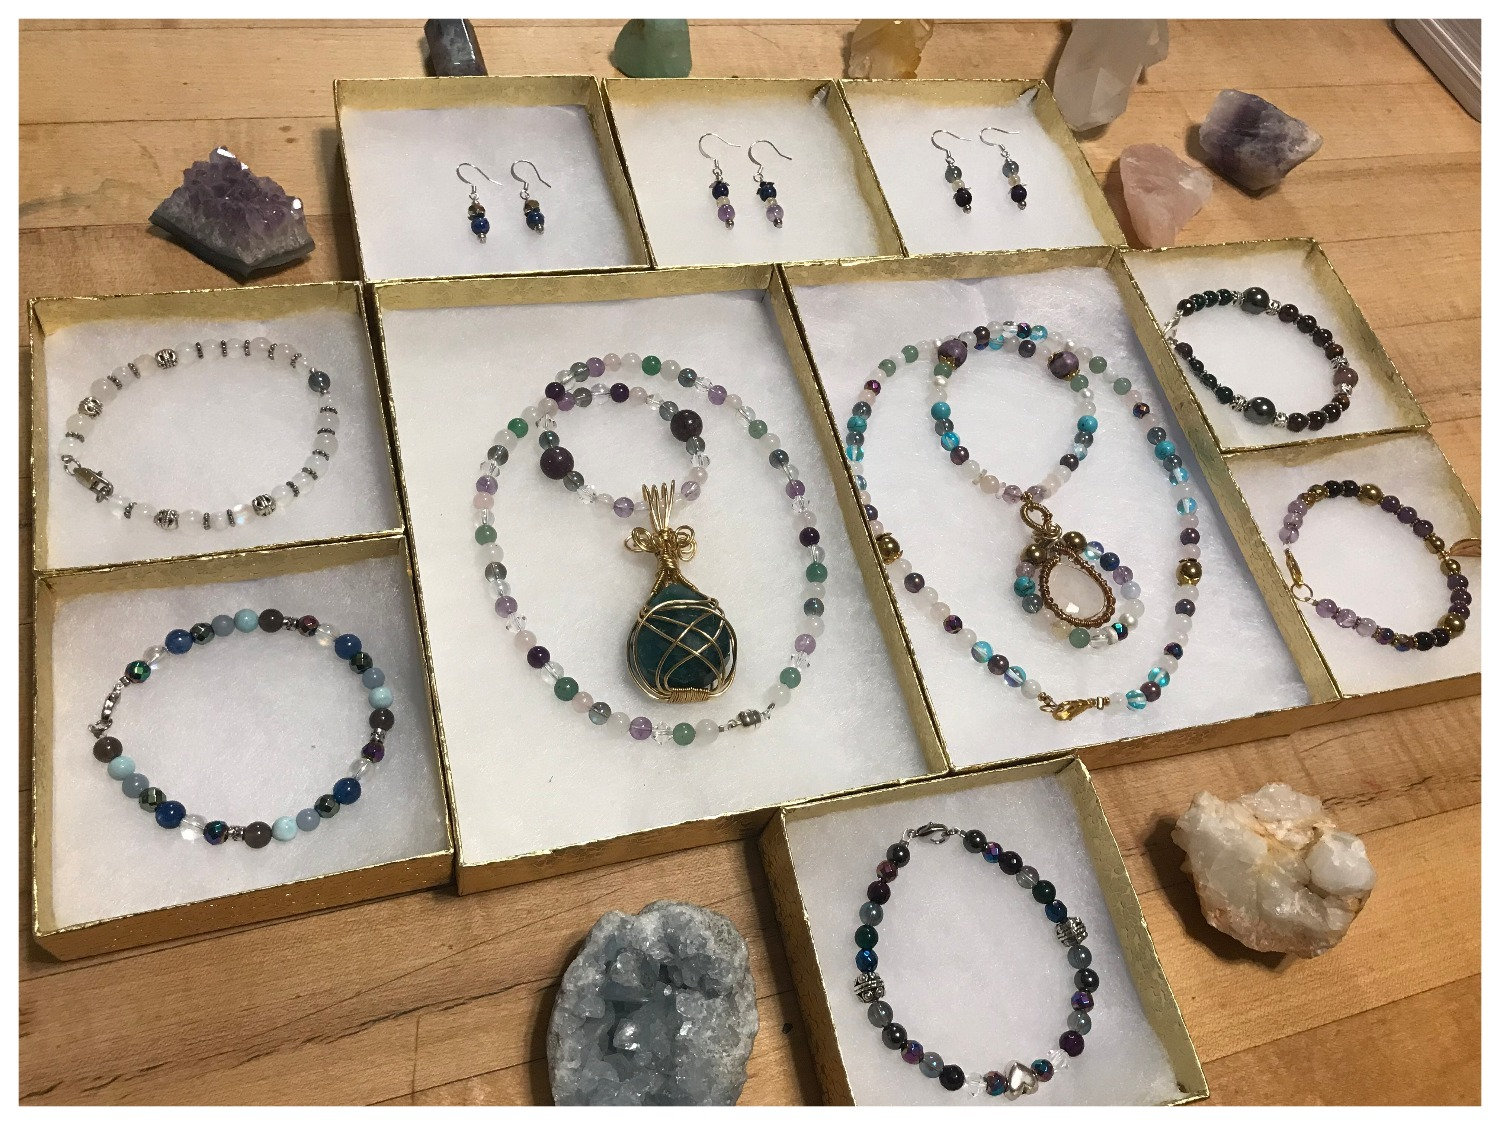 Gemstone Necklace and Earrings